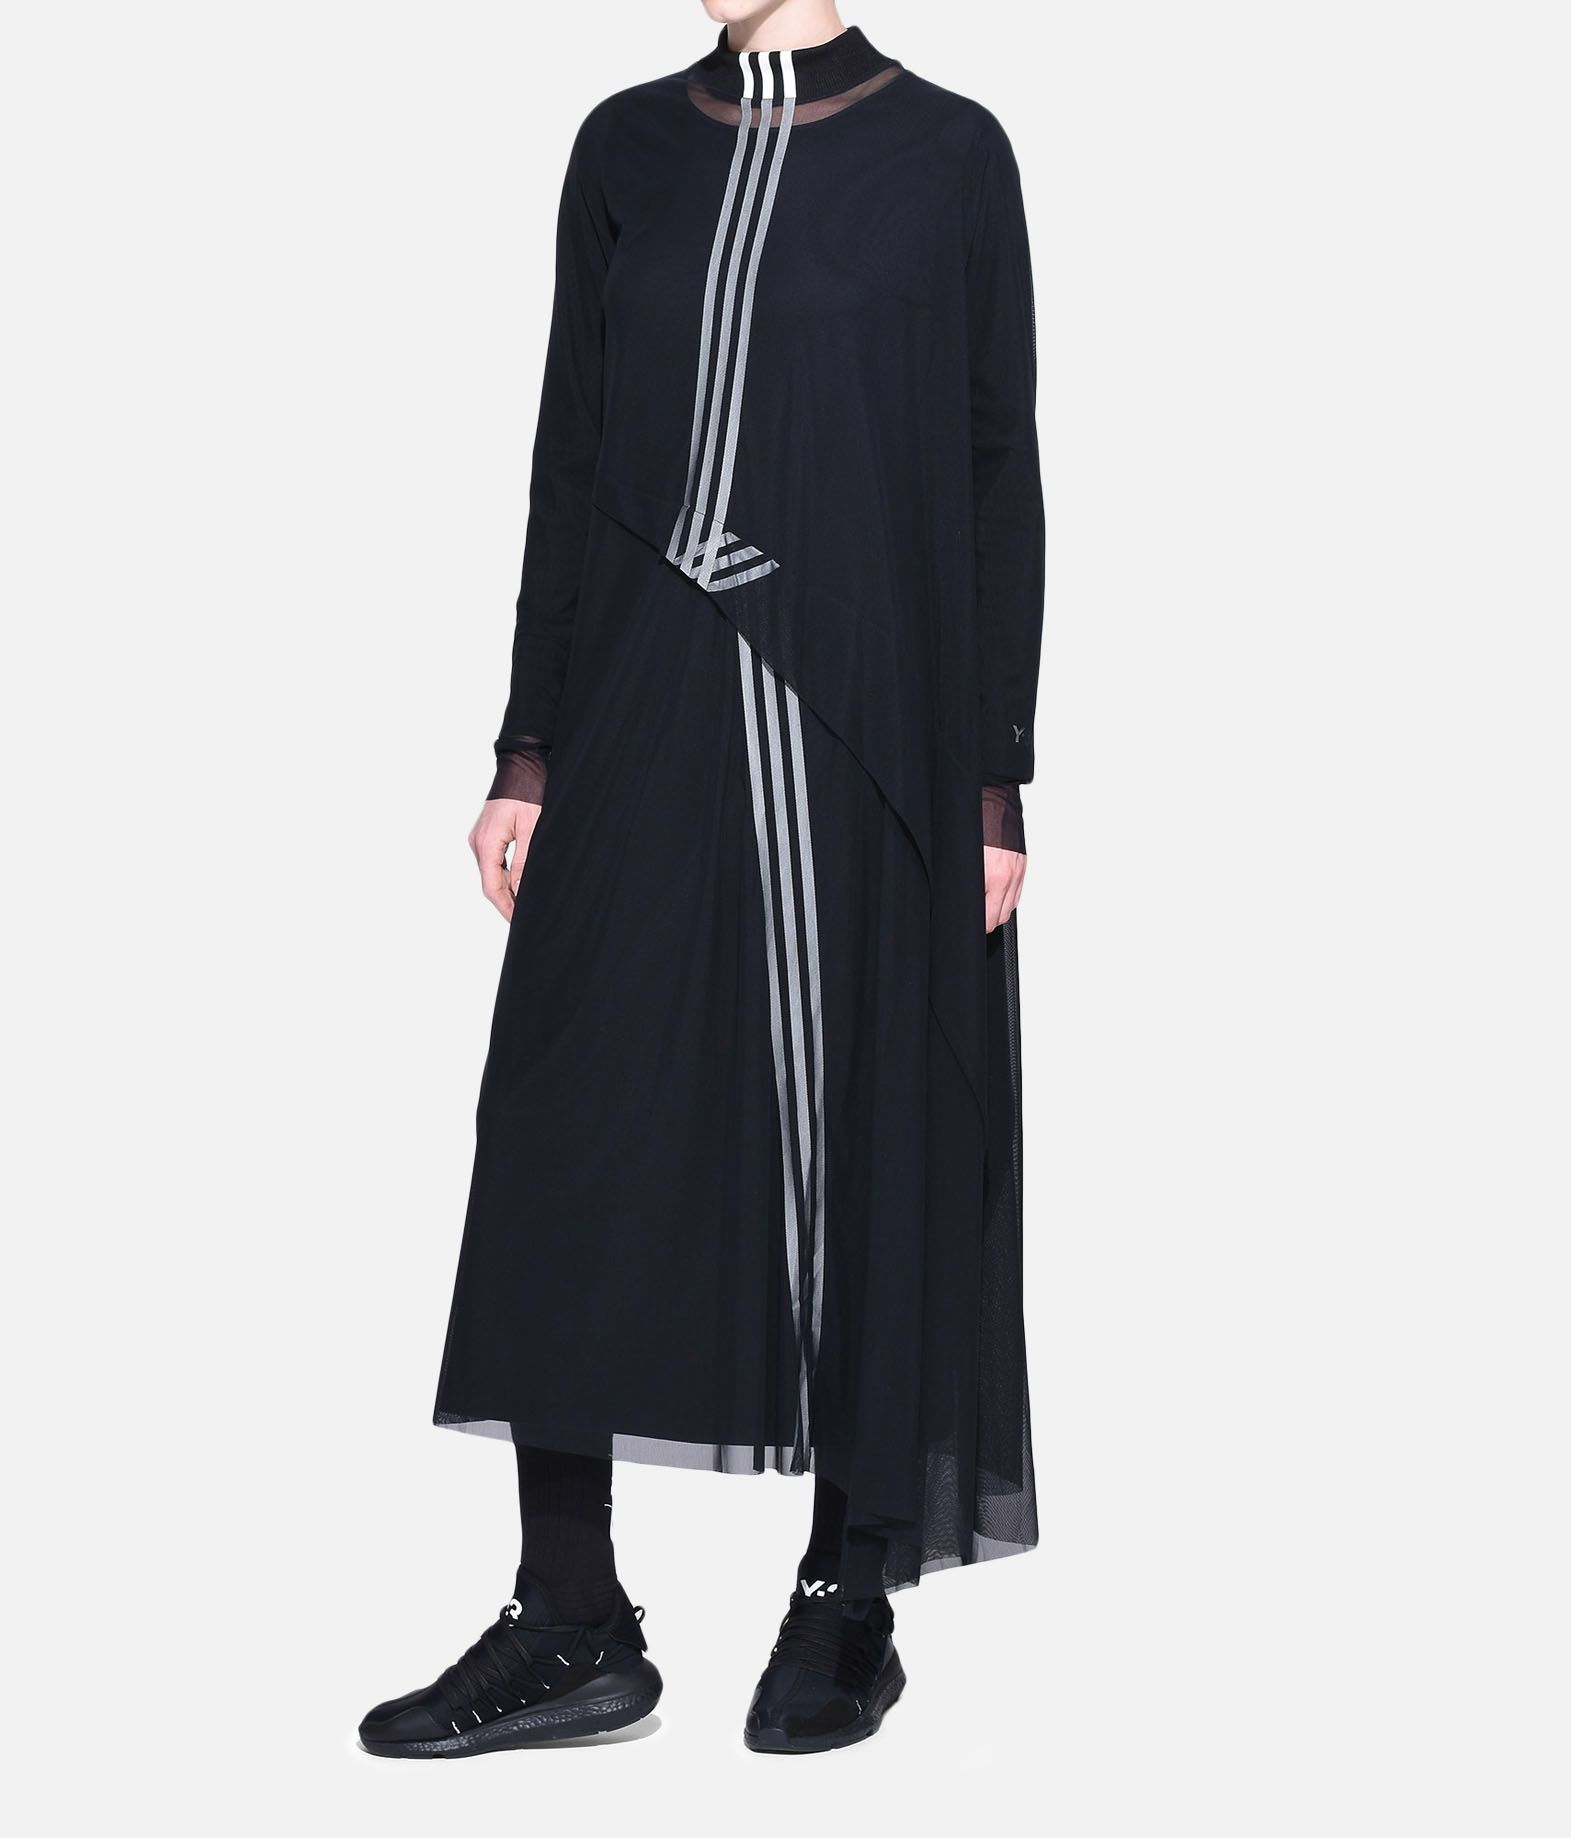 Y-3 Y-3 3-Stripes Mesh Dress Vestito lungo Donna a